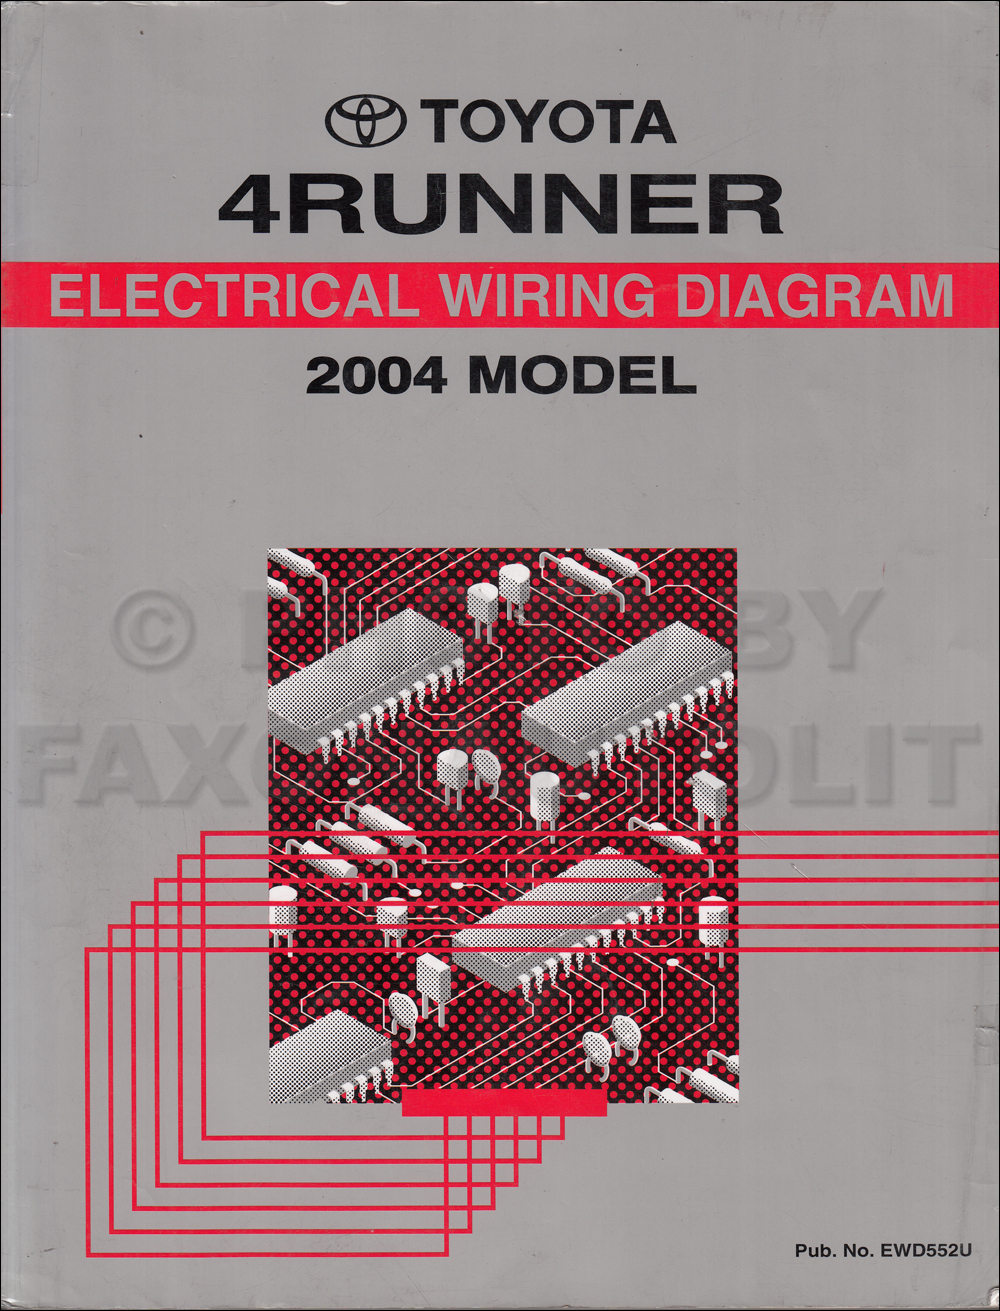 2004 Toyota 4Runner Wiring Diagram Manual Original on